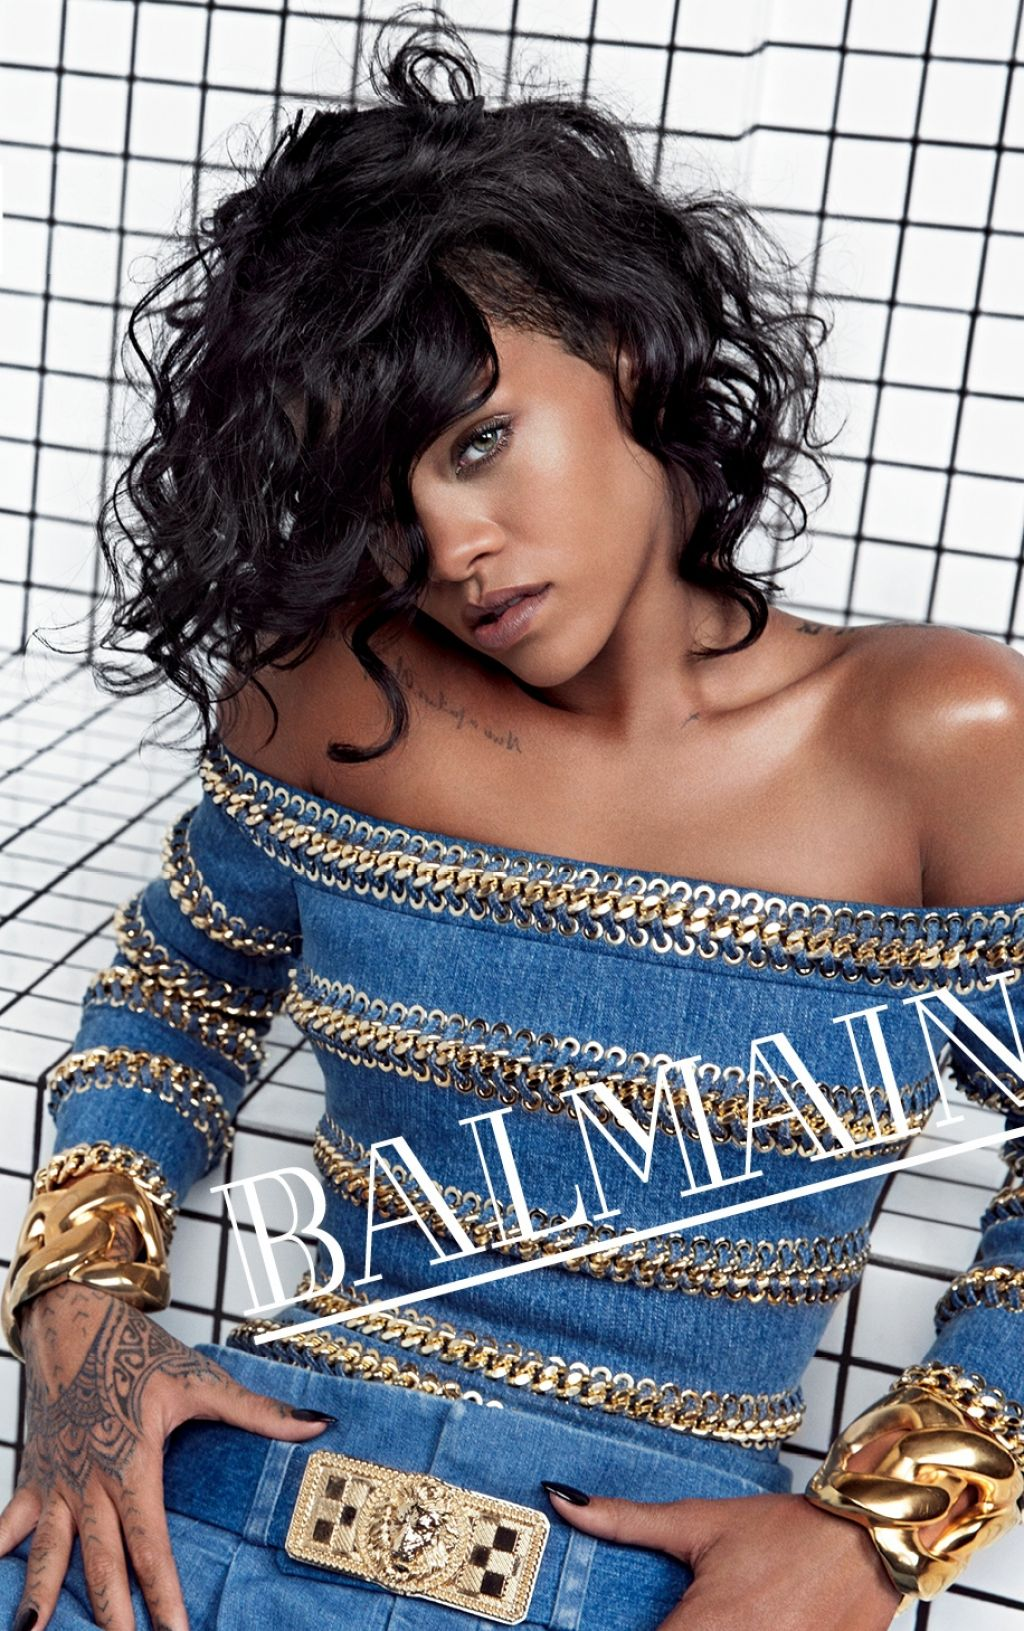 Rihanna Photoshoot by Inez & Vinoodh - Balmain Spring-Summer 2014